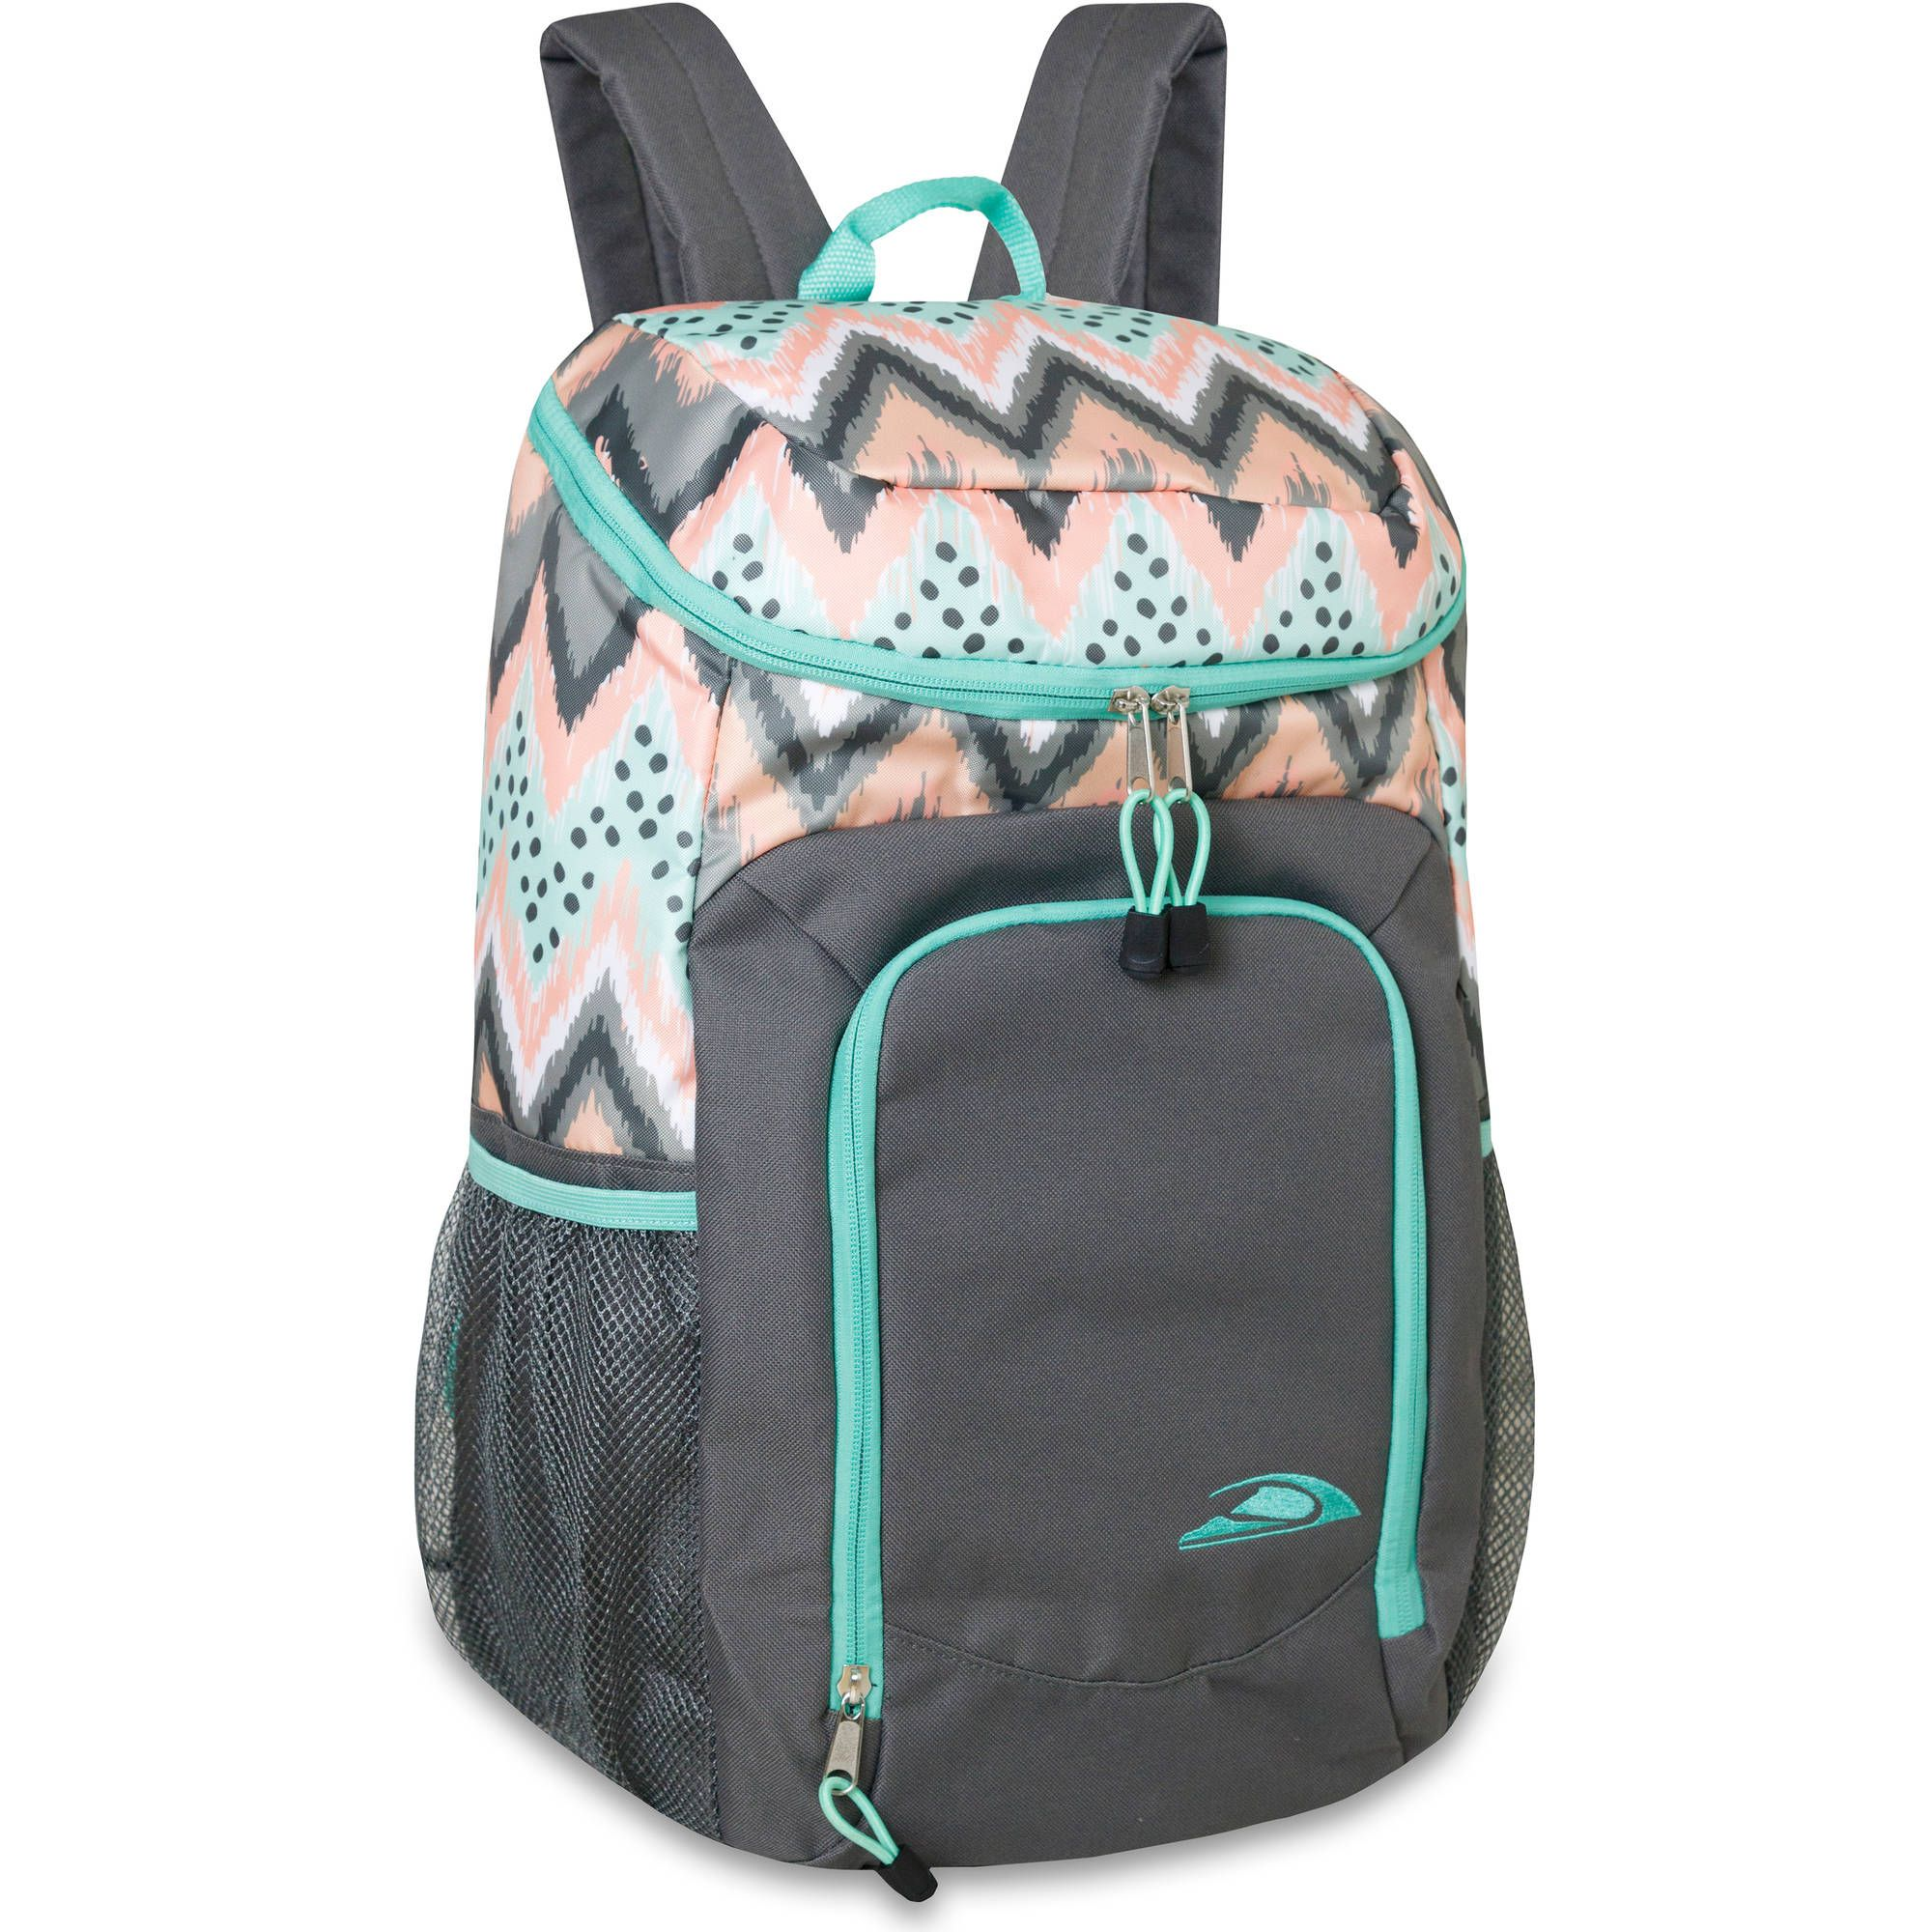 f414df0cde Girls Backpacks - Backpacks for Girls at Walmart.com